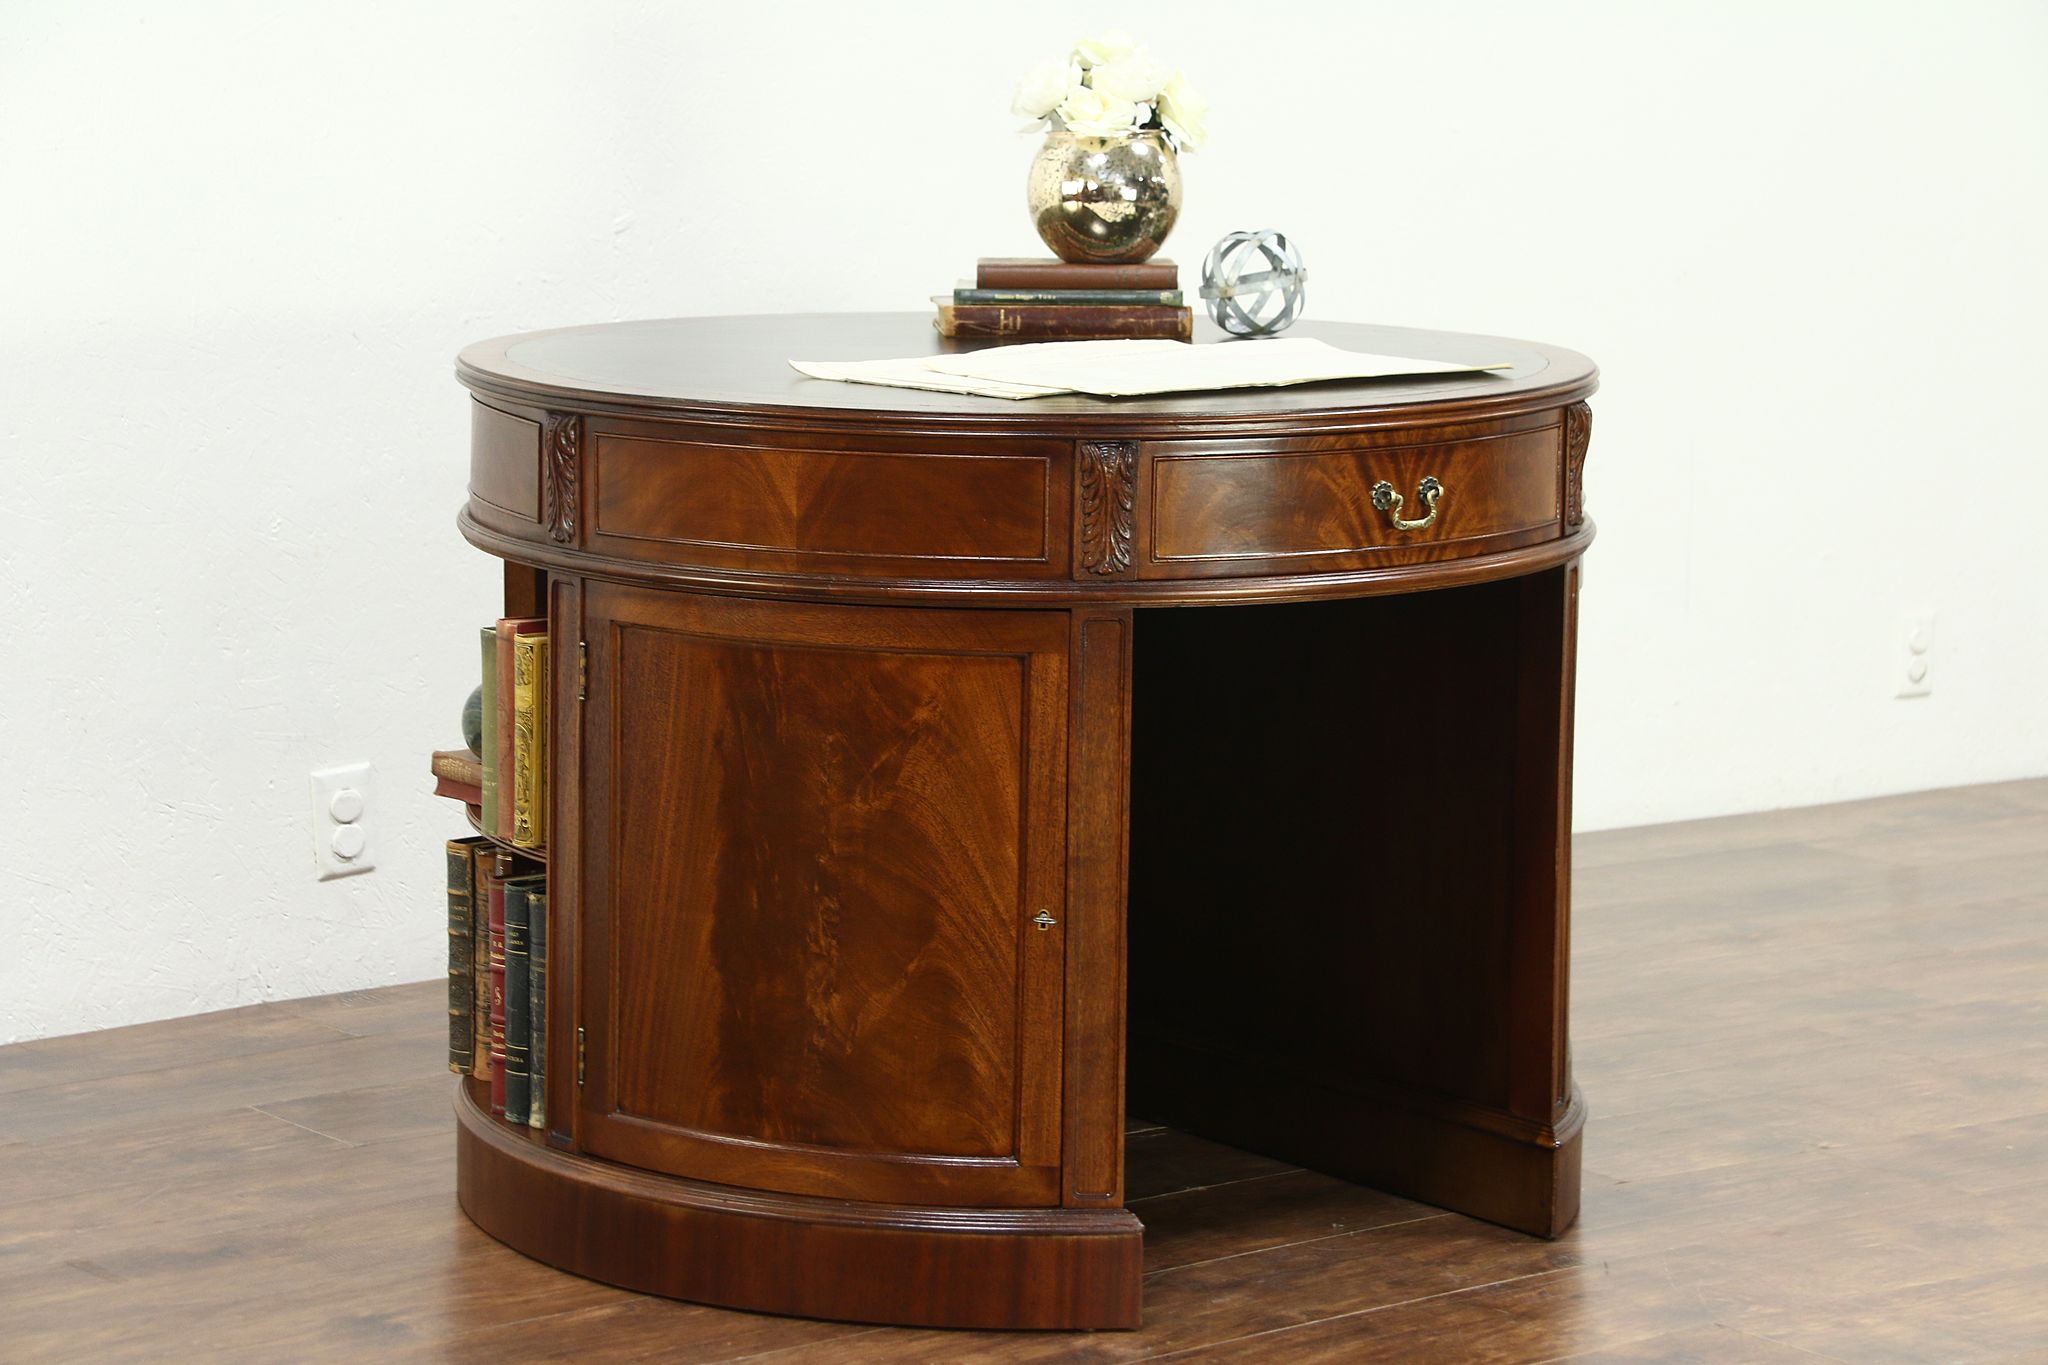 Round Georgian Design Gany Vintage Library Desk Tooled Leather Top